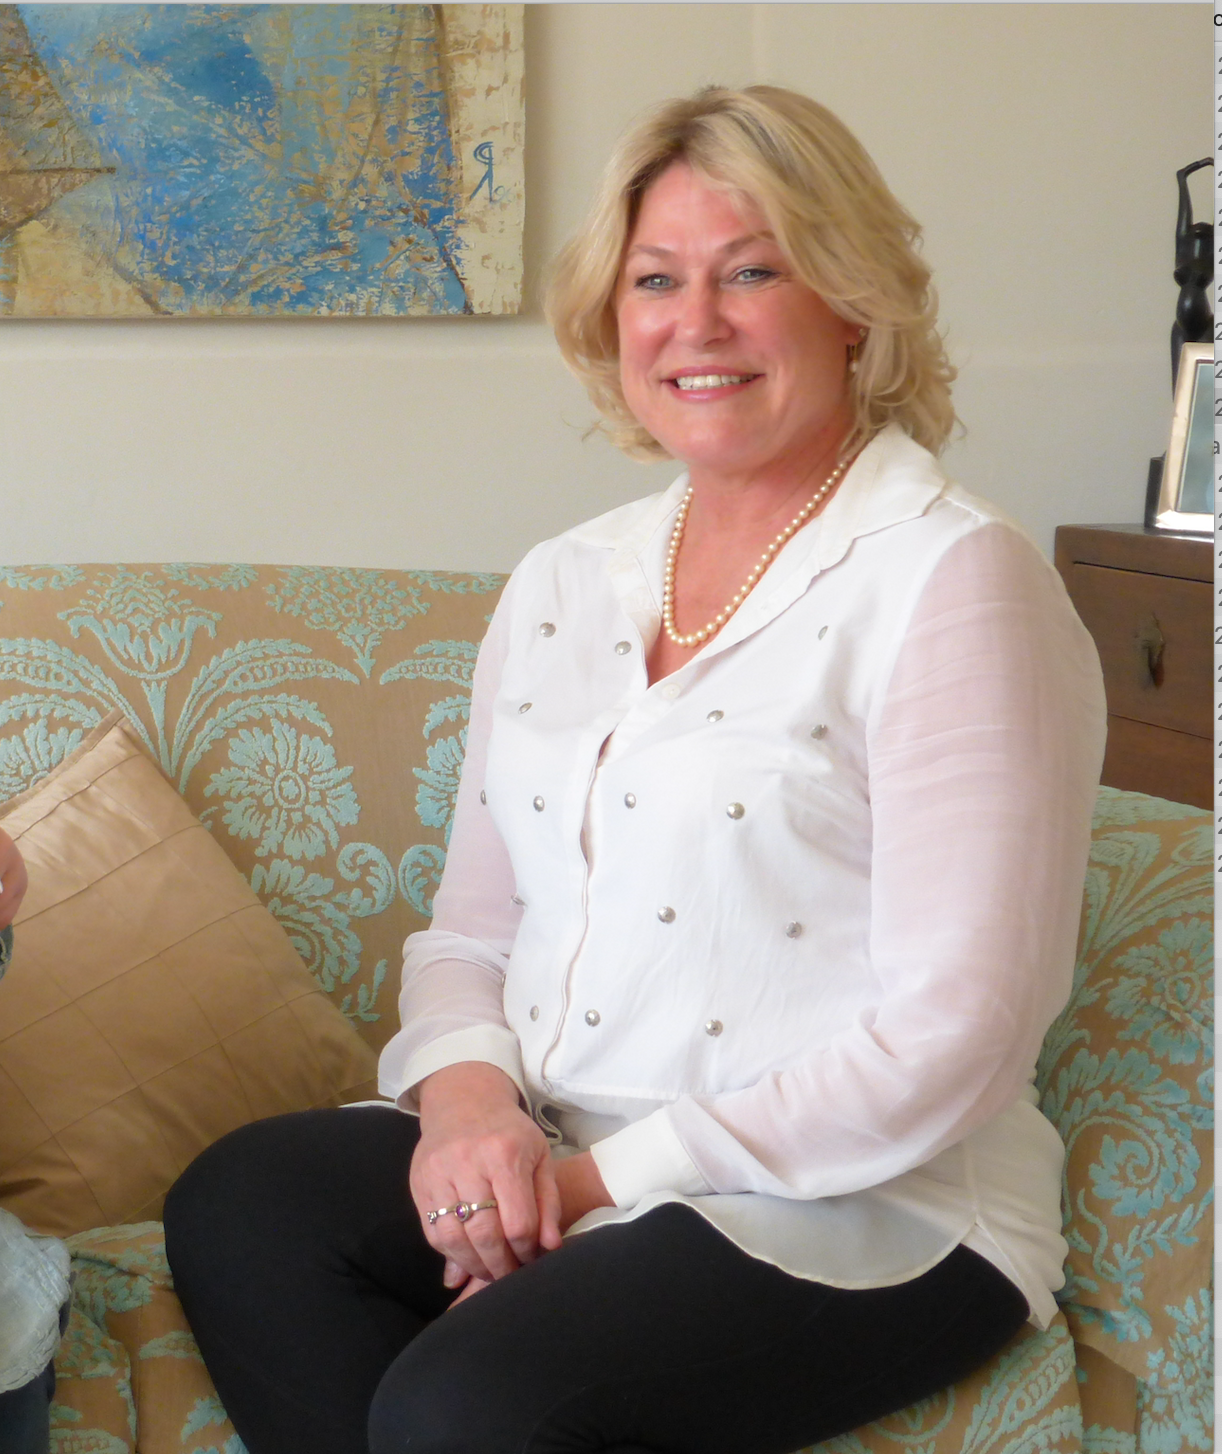 Above: Louise Tighe, founder and managing director of Paperlink.